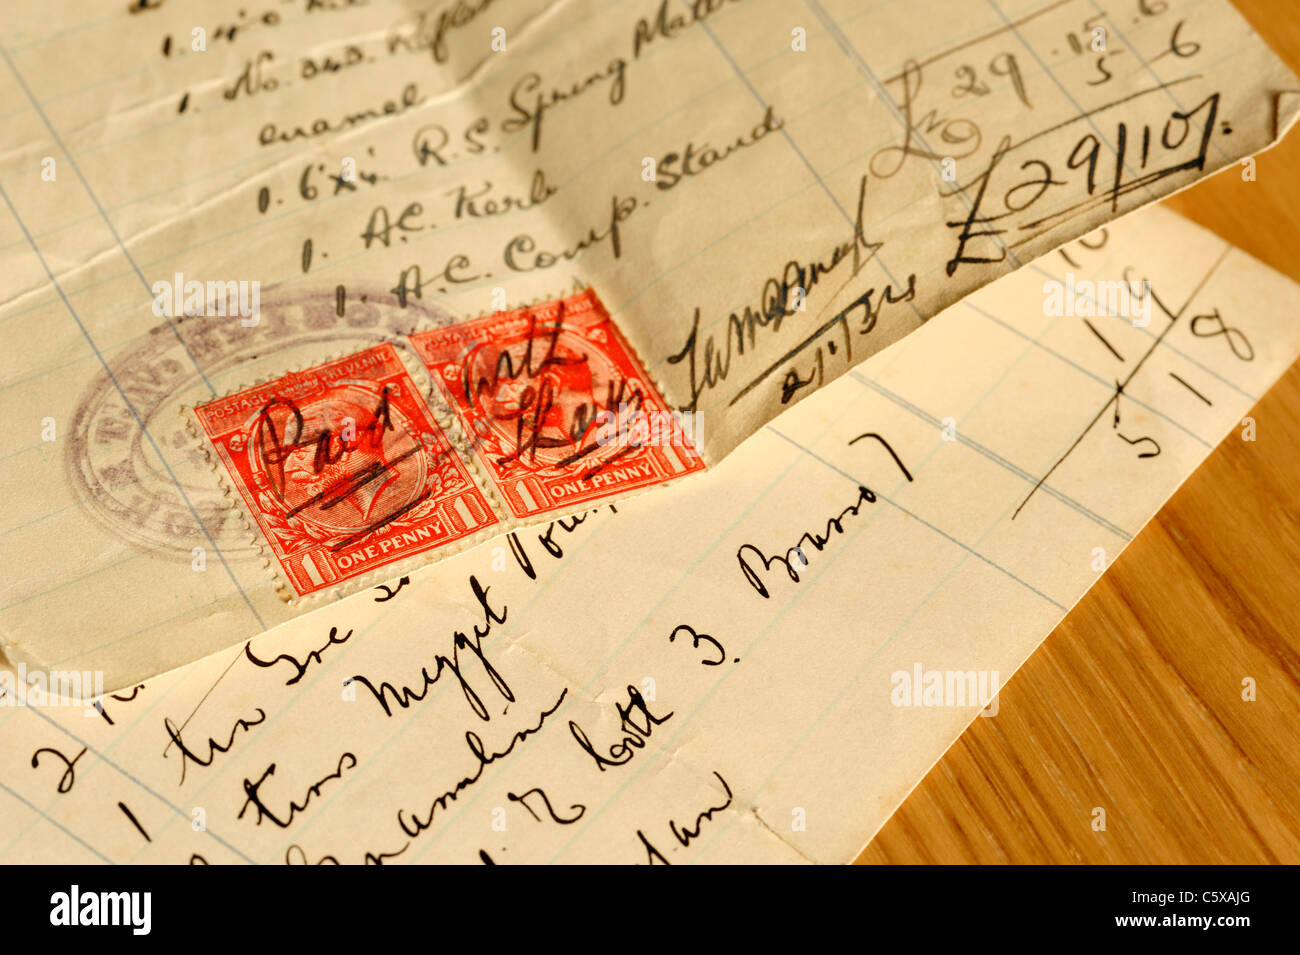 Stamp duty on an old receipt - Stock Image